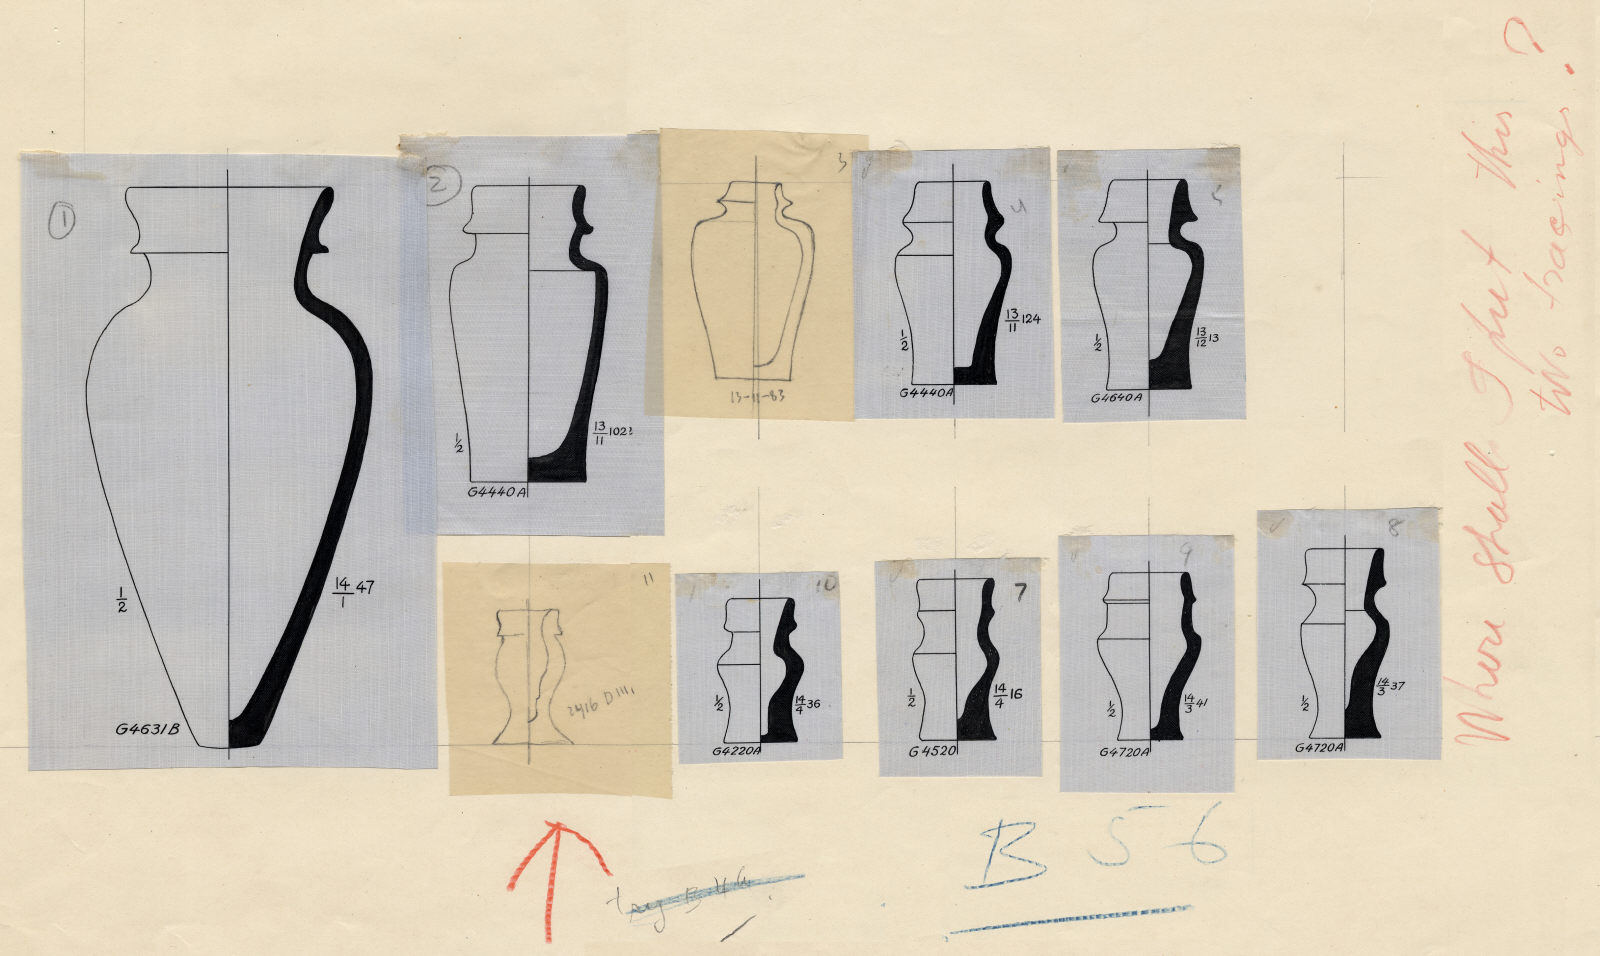 Drawings: Pottery jars from G 2416, G 4220, G 4240, G 4440, G 4520, G 4631, G 4640, G 4720